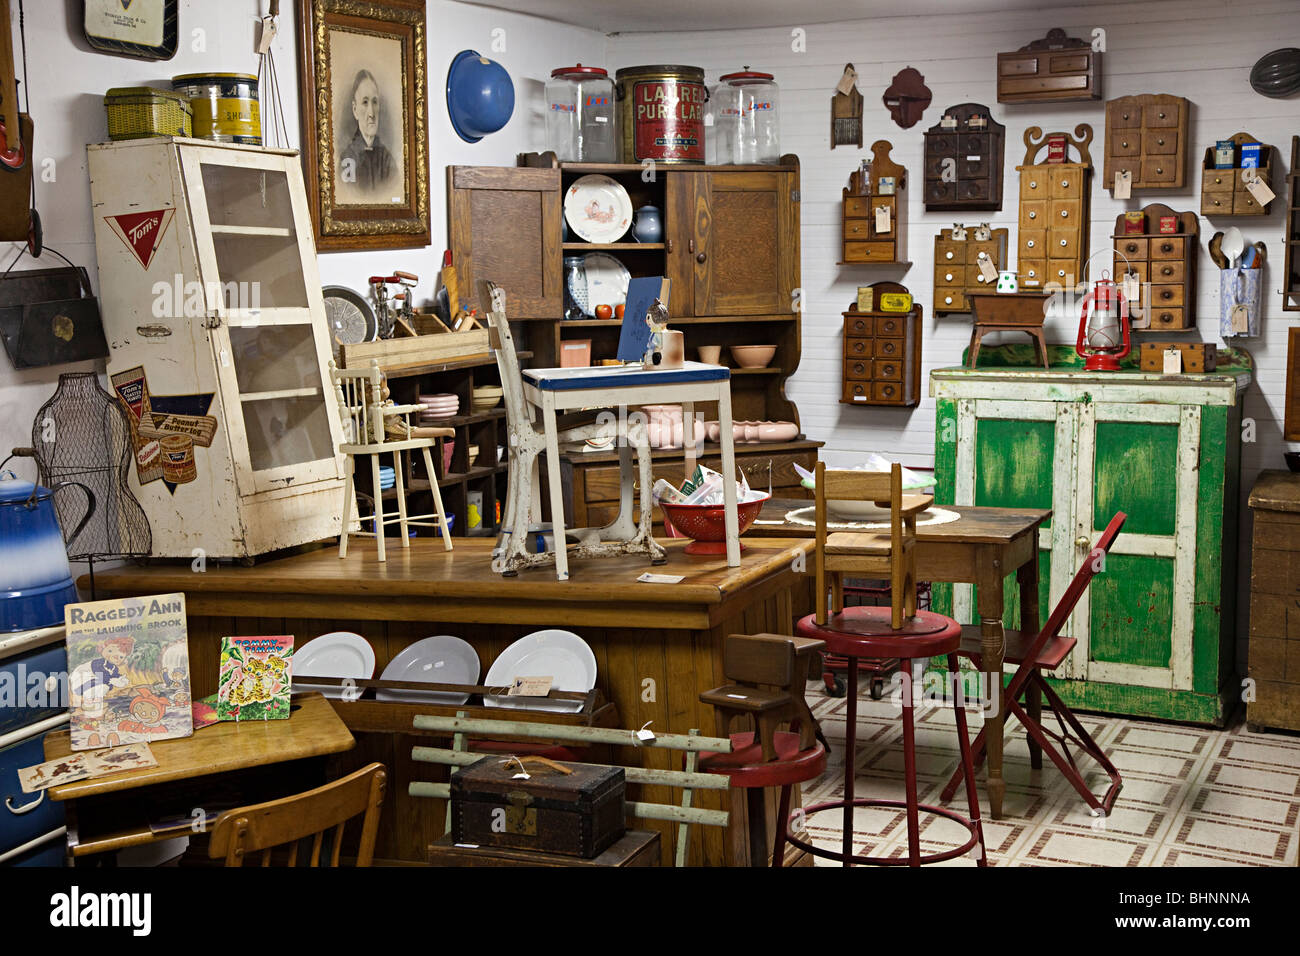 Flea Market Shop With Furniture And Goods For Sale Texas Usa Stock Photo Royalty Free Image